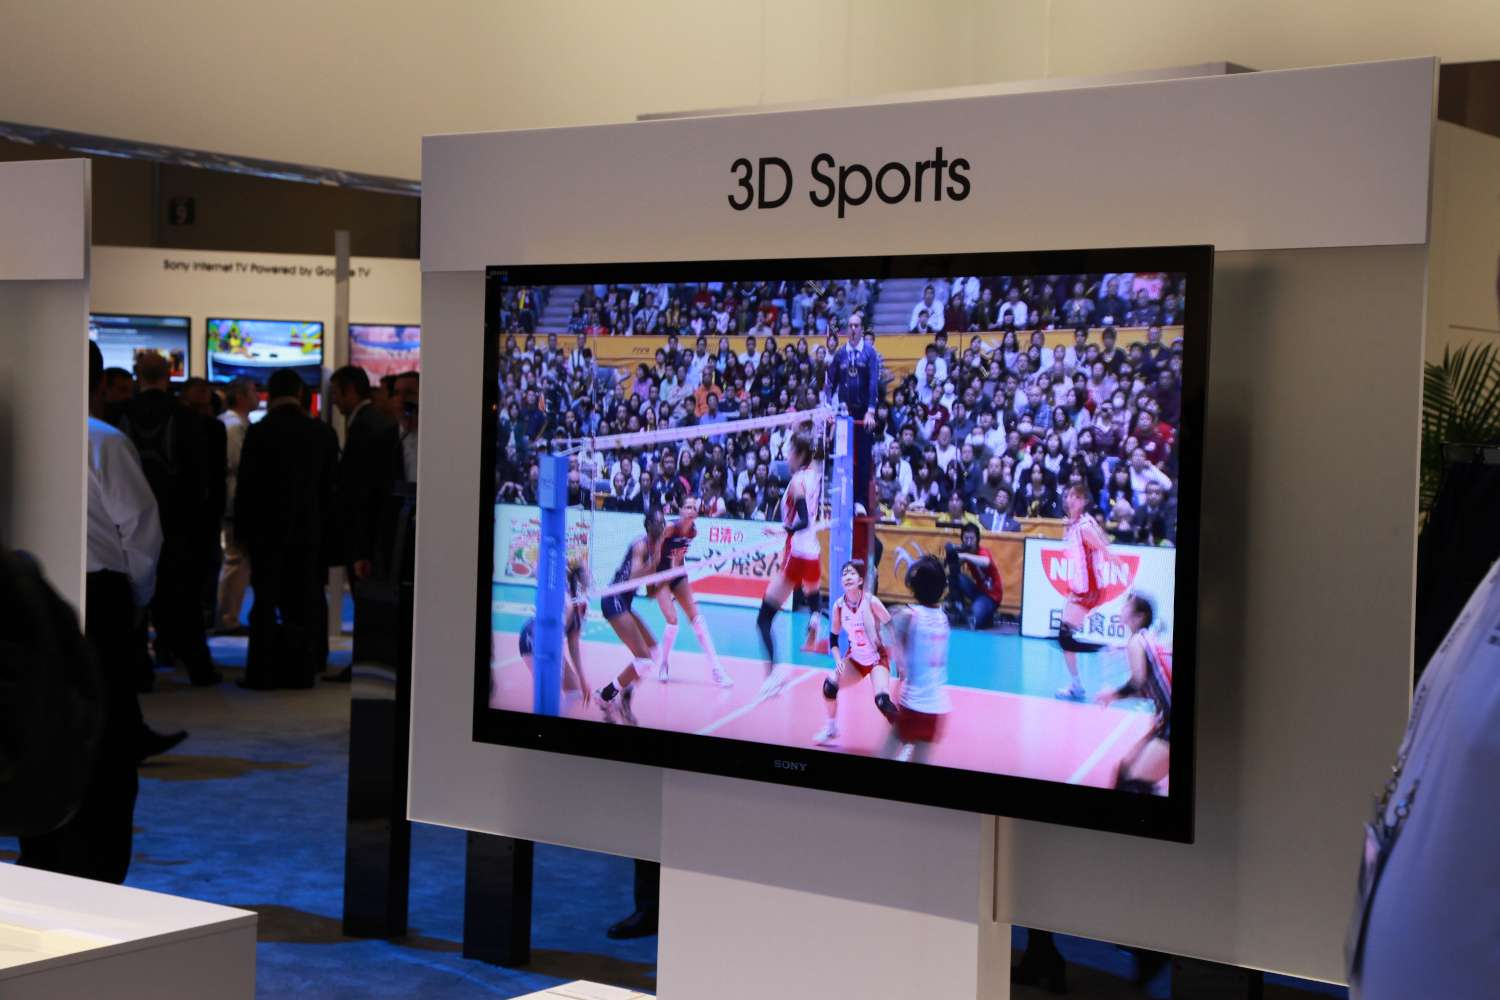 3DTV displaying sports at CES booth